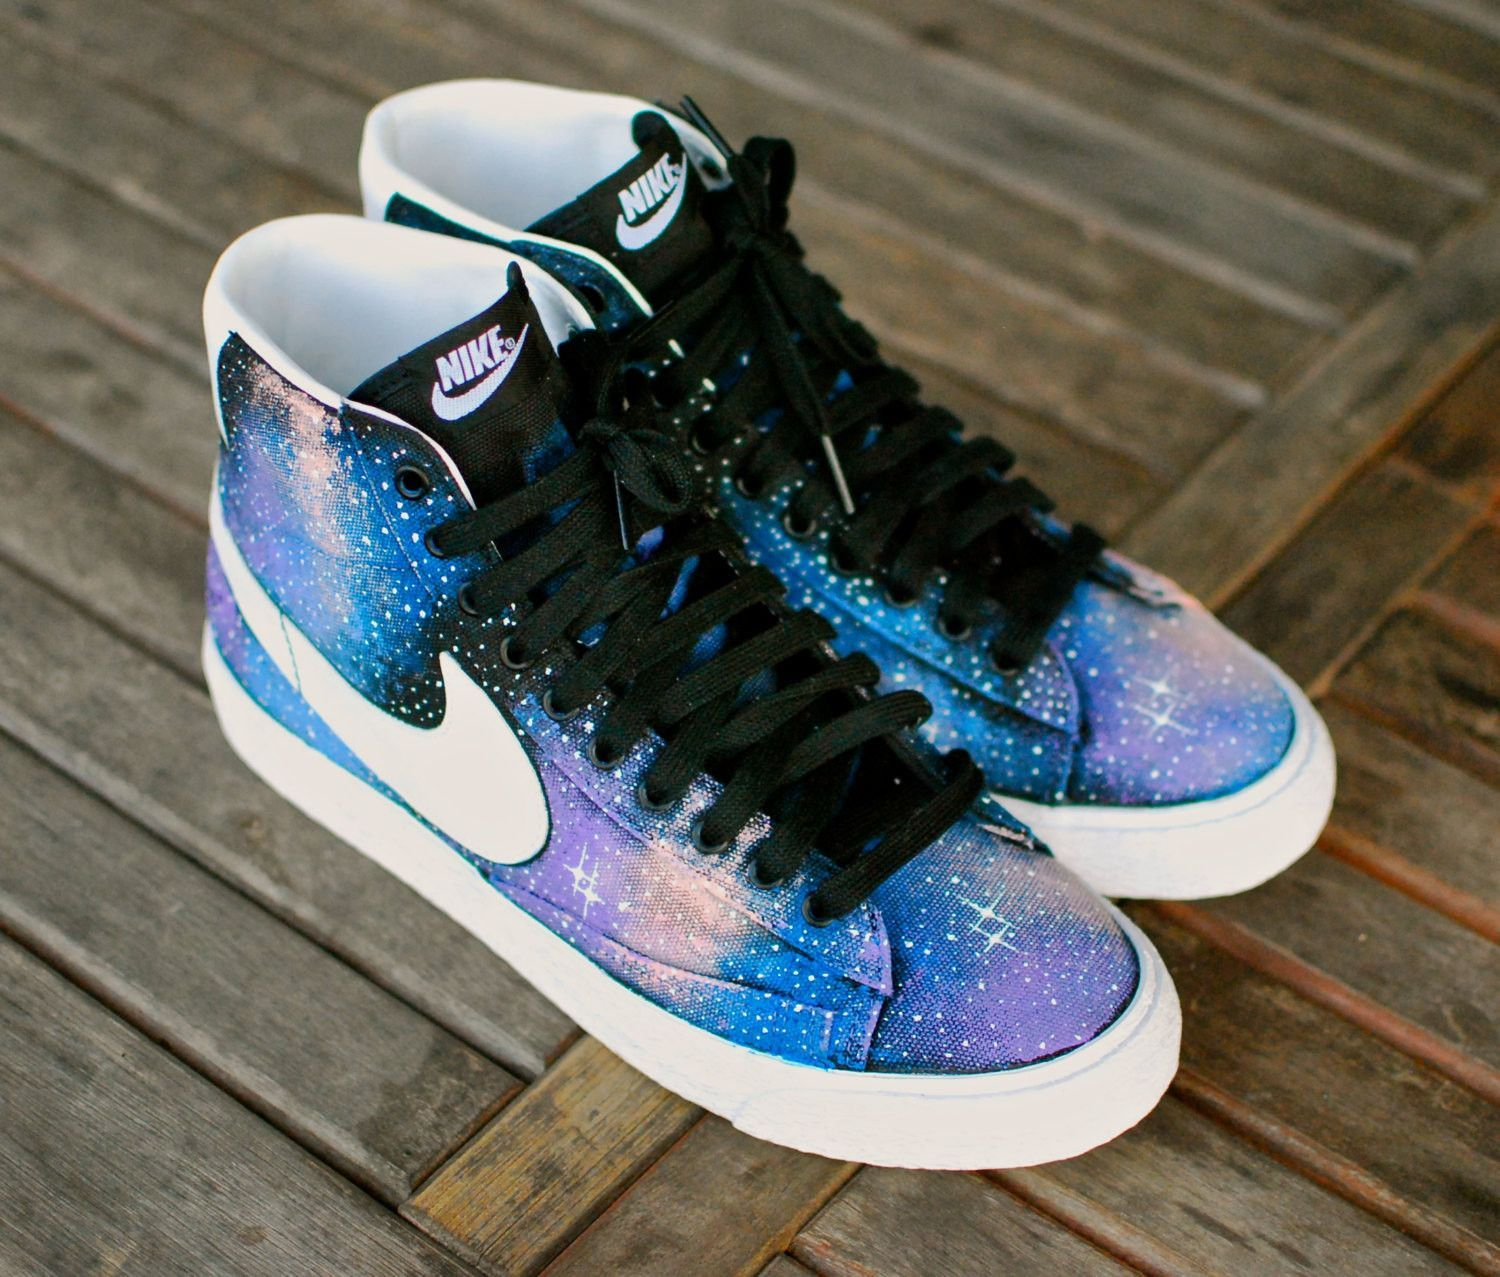 wholesale dealer eb9e3 d6593 Custom Hand-Painted Nike Blazer Mid Galaxy Sneakers